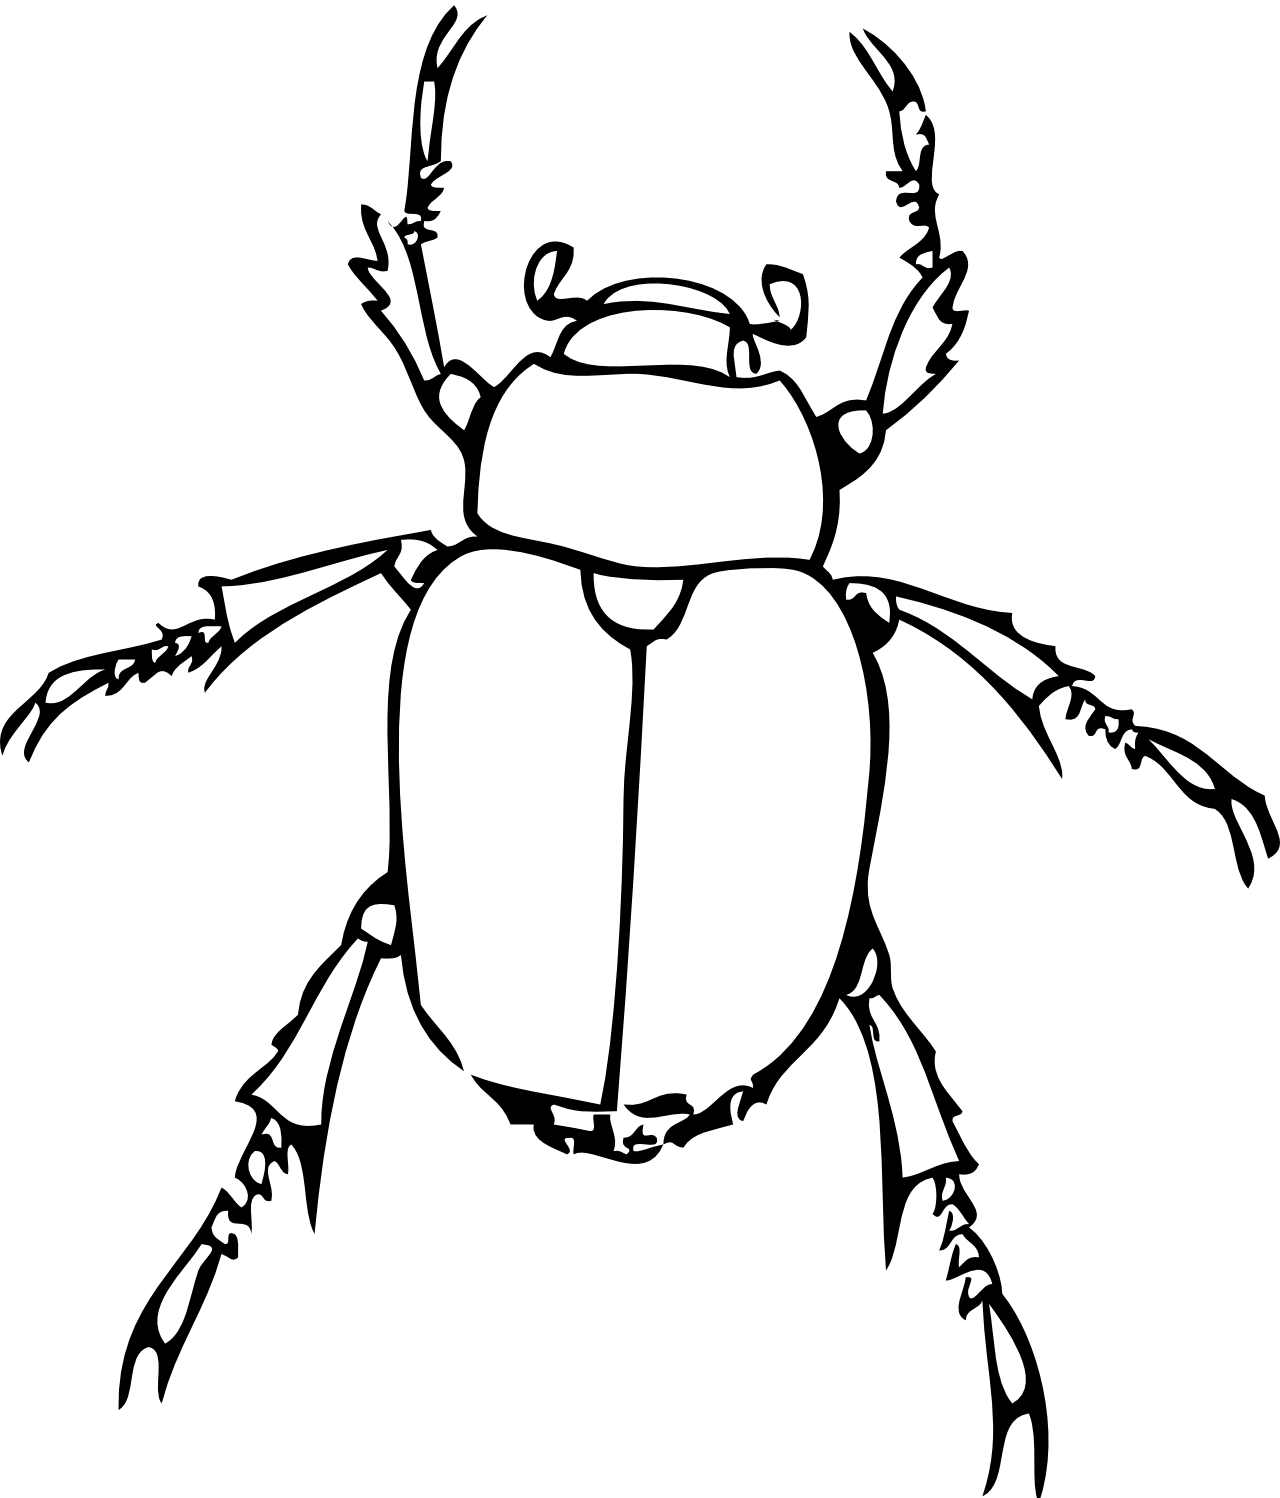 Beetle panda free images. Japanese clipart black and white